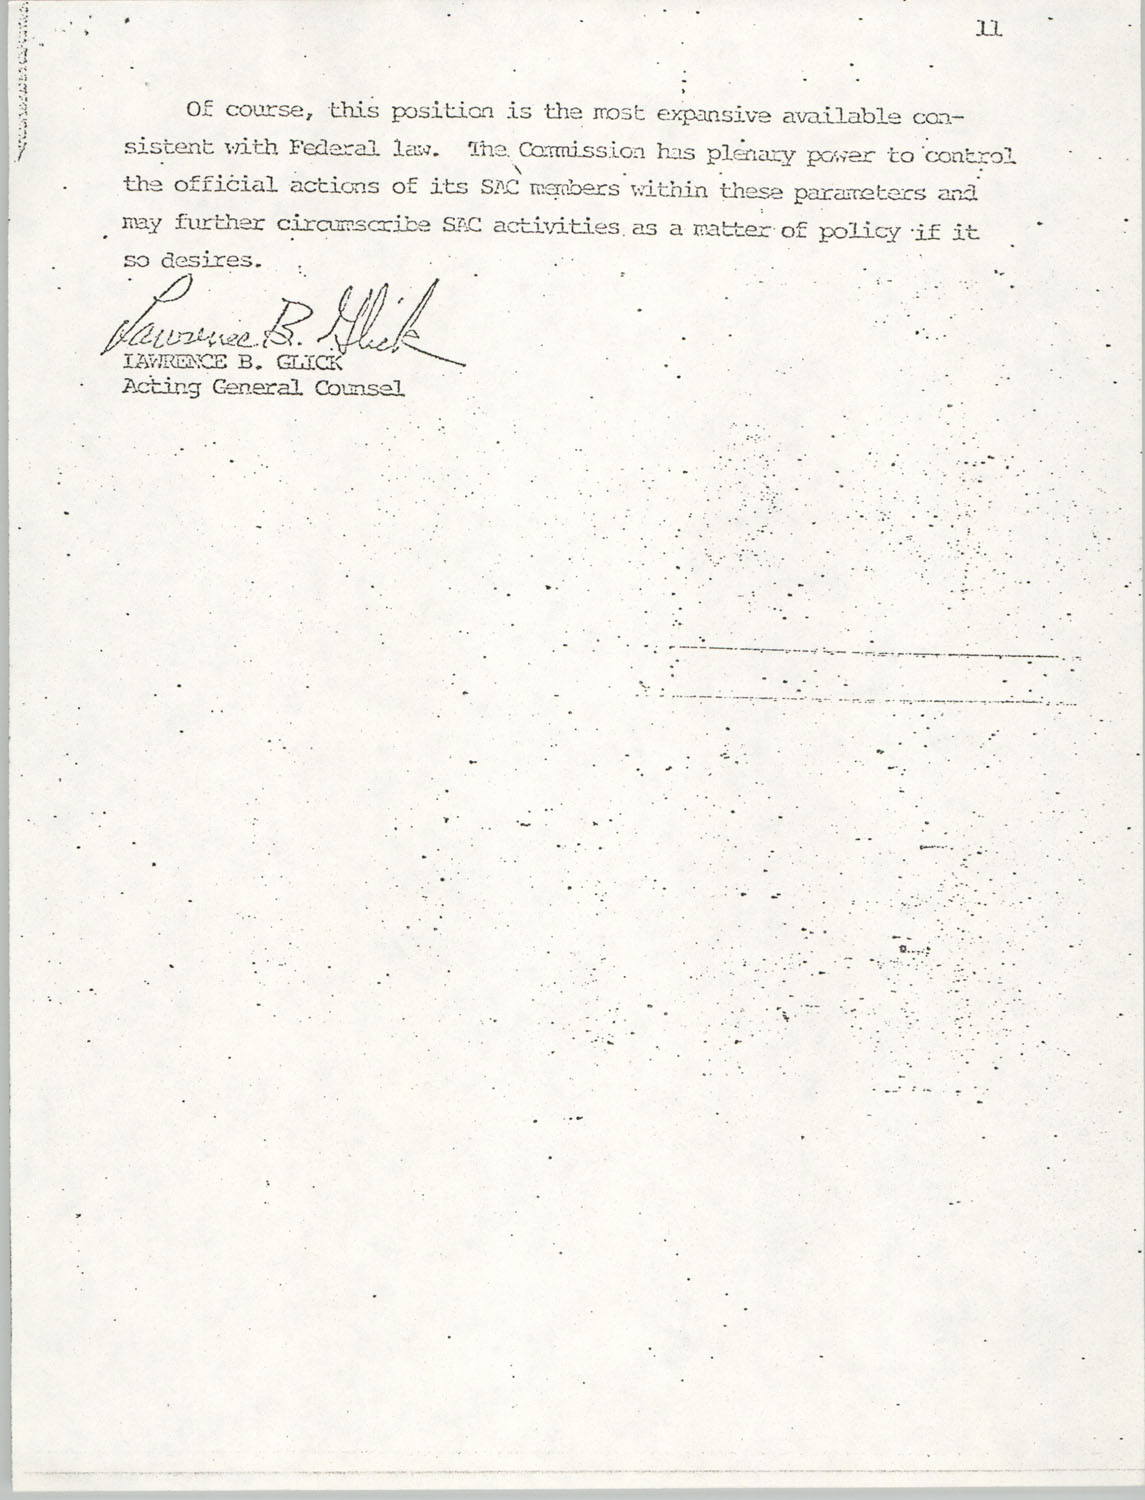 Memorandum from Lawrence B. Glick to Isaiah T. Creswell, August 7, 1975, Page 11